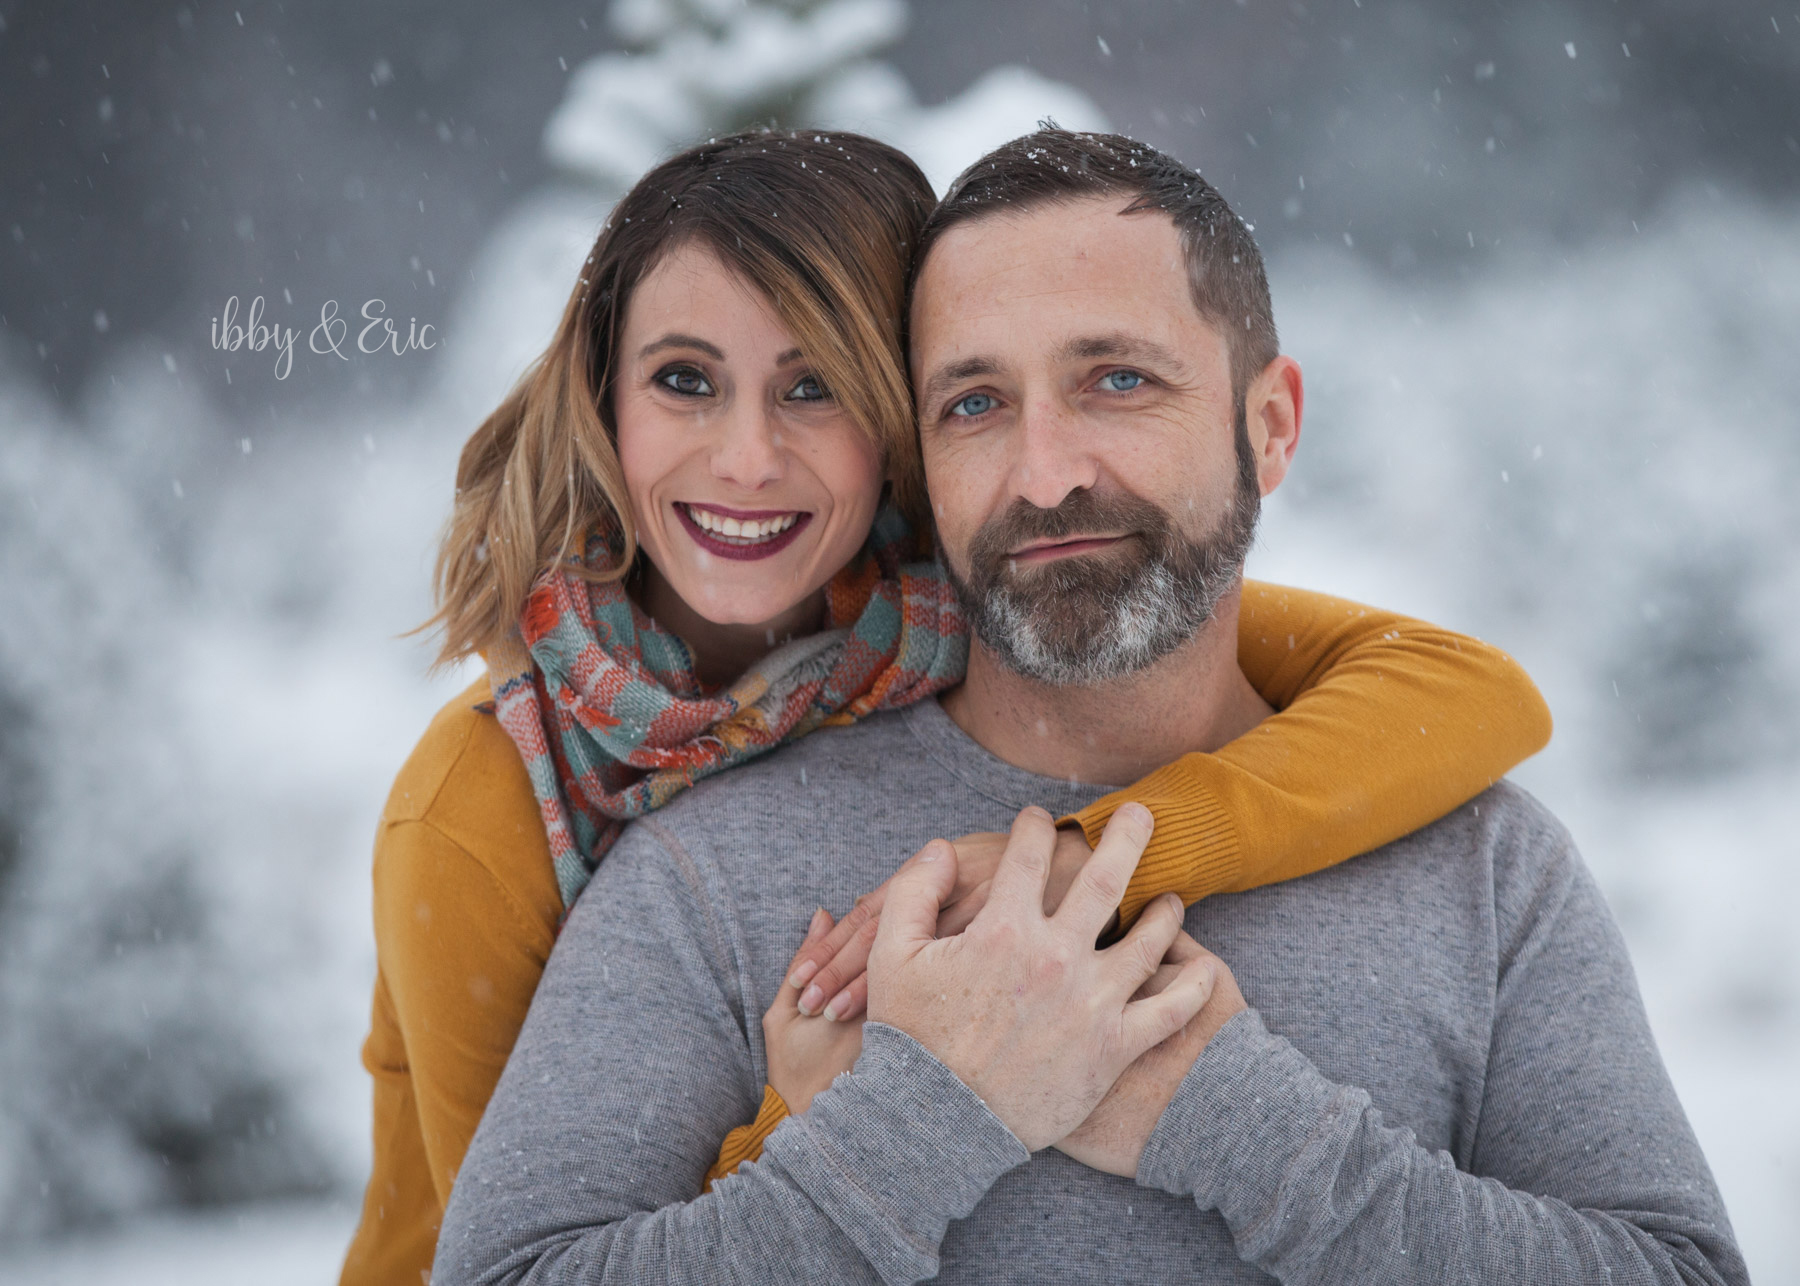 Husband & wife hug and smile in a snowstorm during their winter family pictures in Westfield, MA.